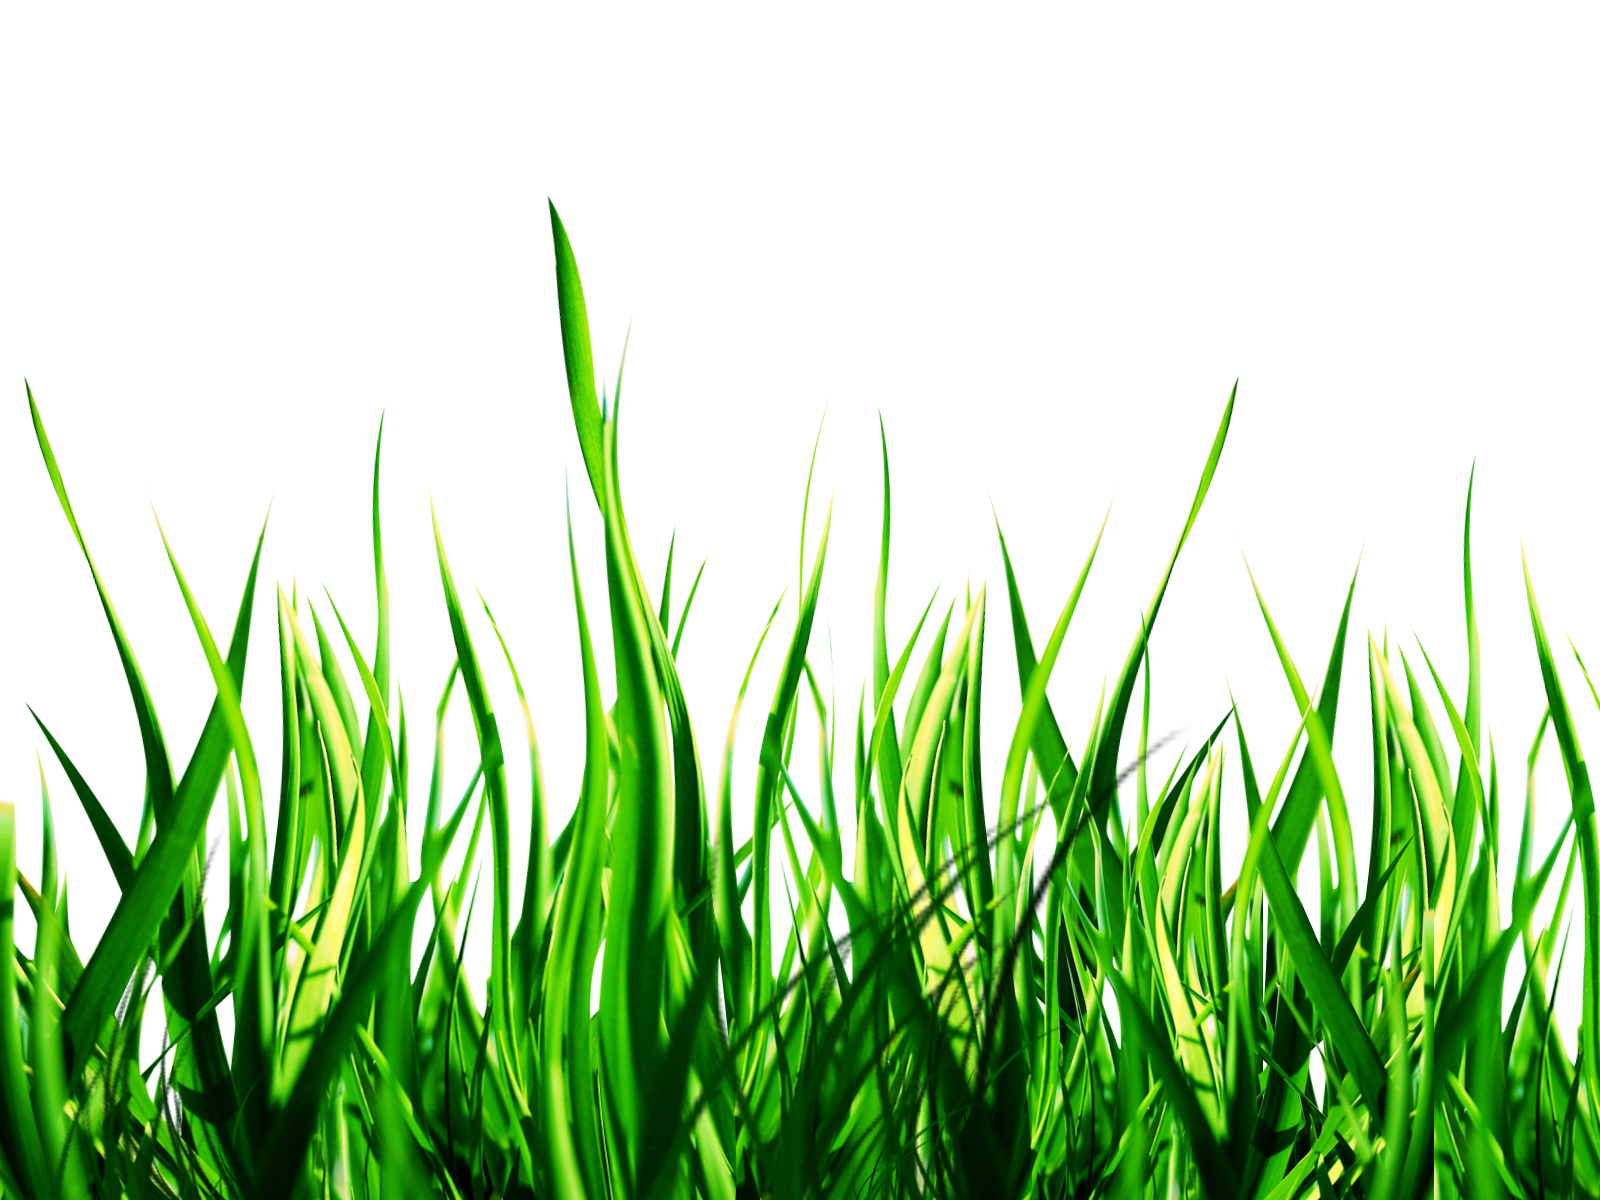 clip art library download Lawn picsart photo studio. Yard clipart grass yard